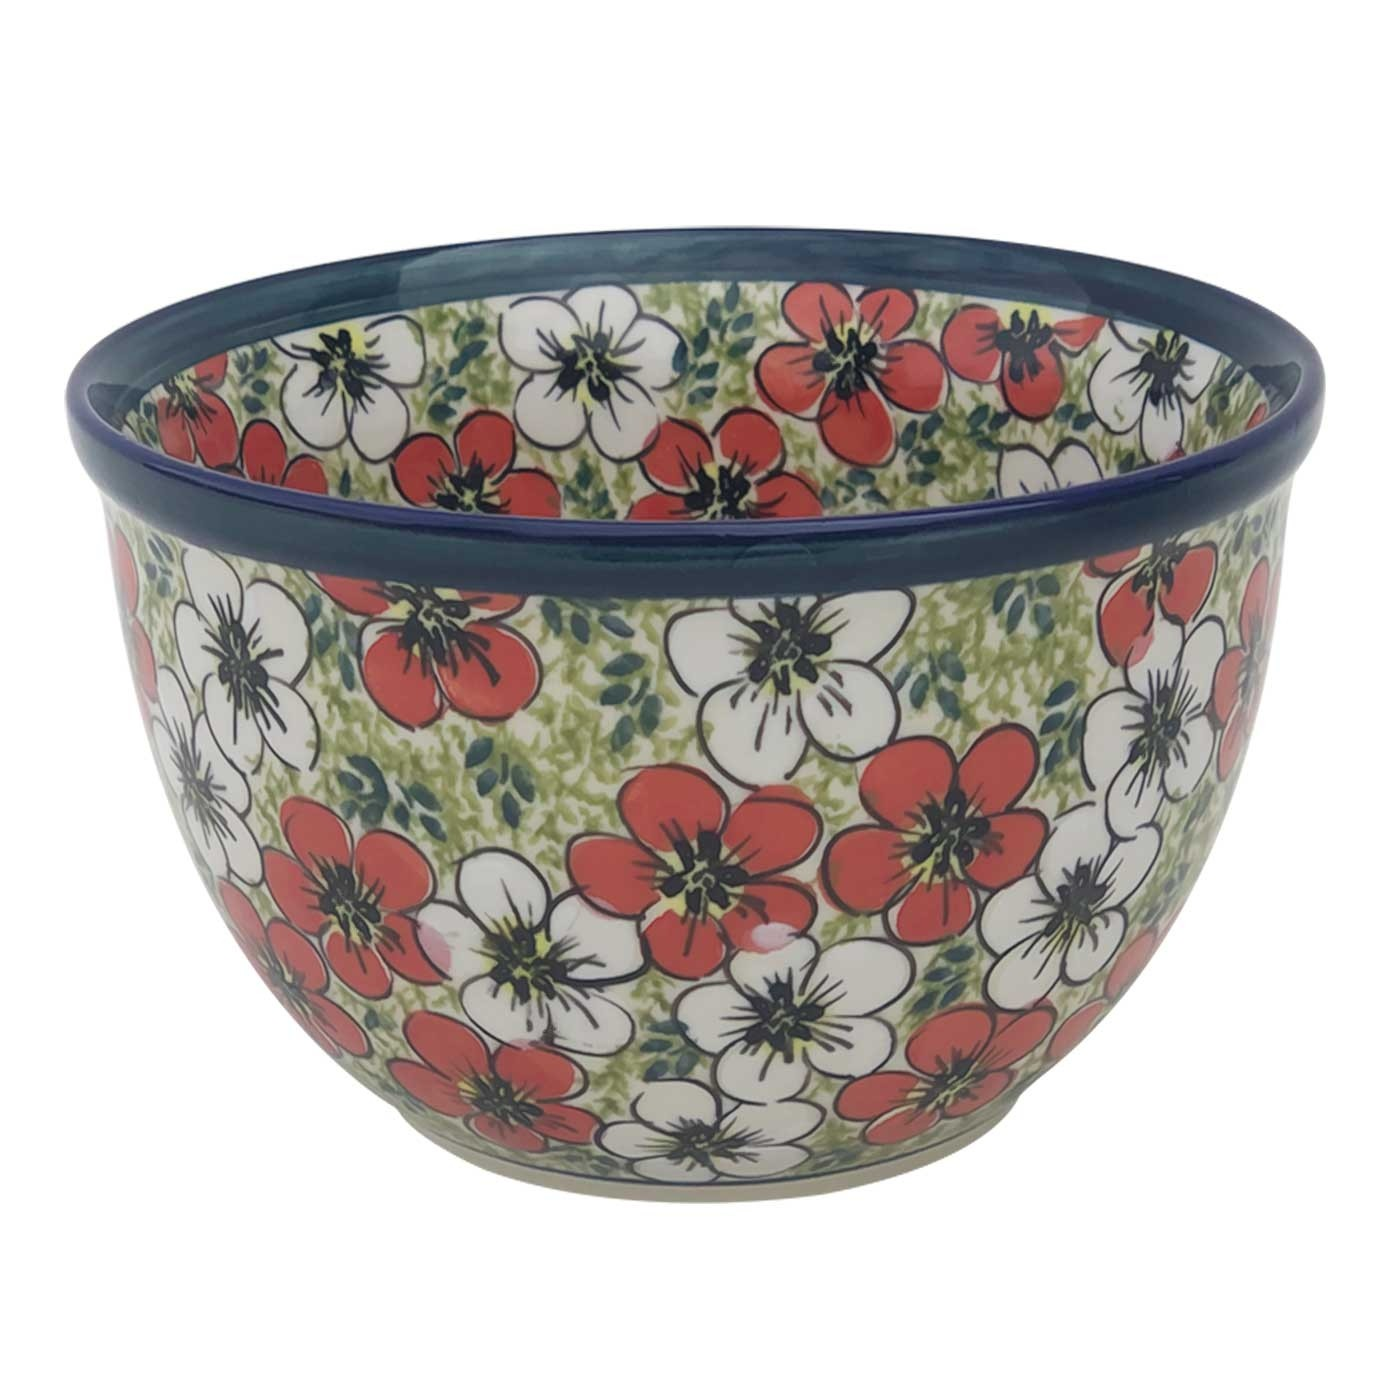 Pottery Avenue 4-Cup Stoneware Mixing Bowl - 984-331AR Red Bacopa